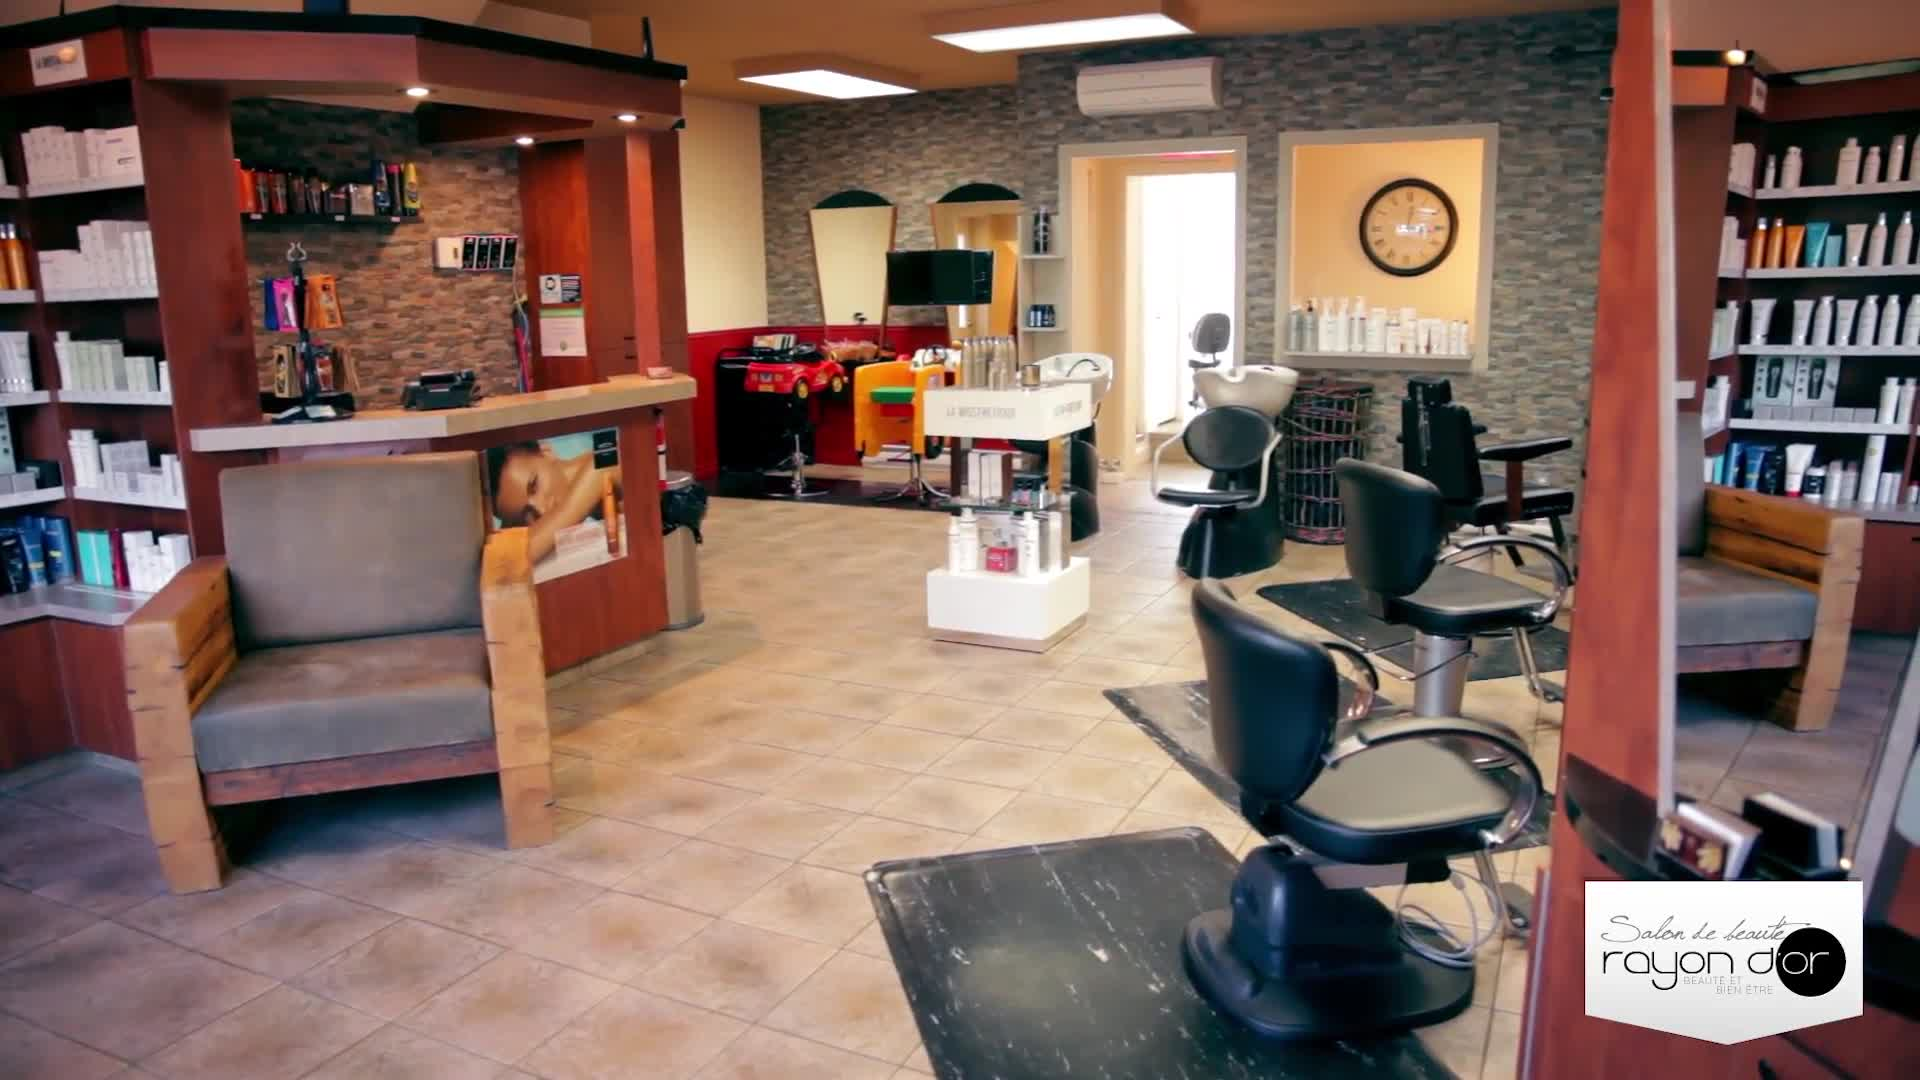 Salon de Beauté Rayon d'Or Inc - Salons de bronzage - 418-878-4932